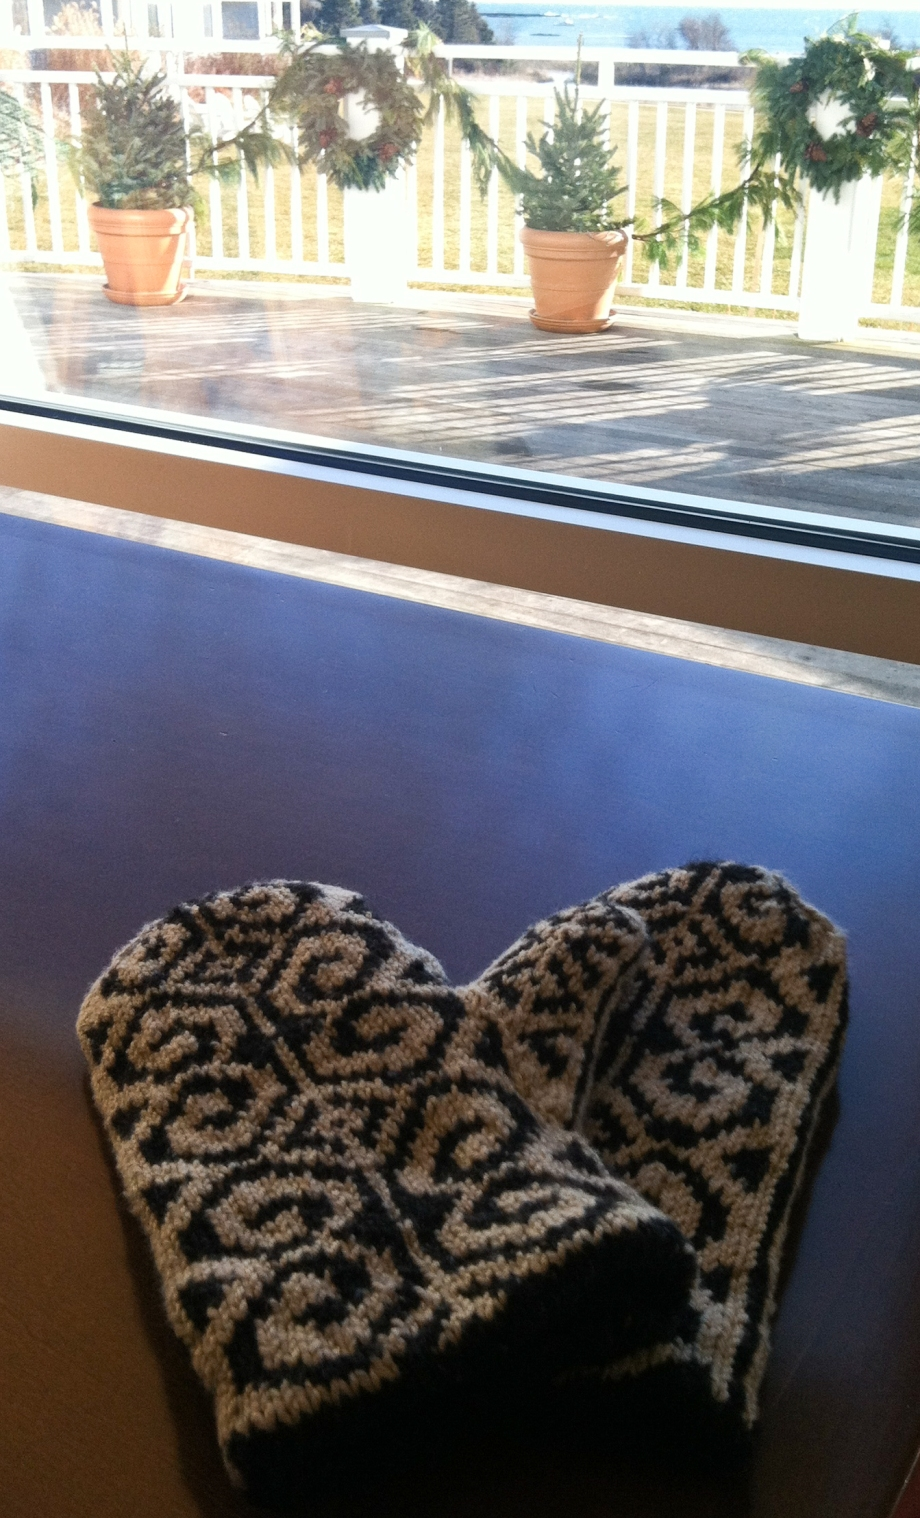 warmest mittens ever!